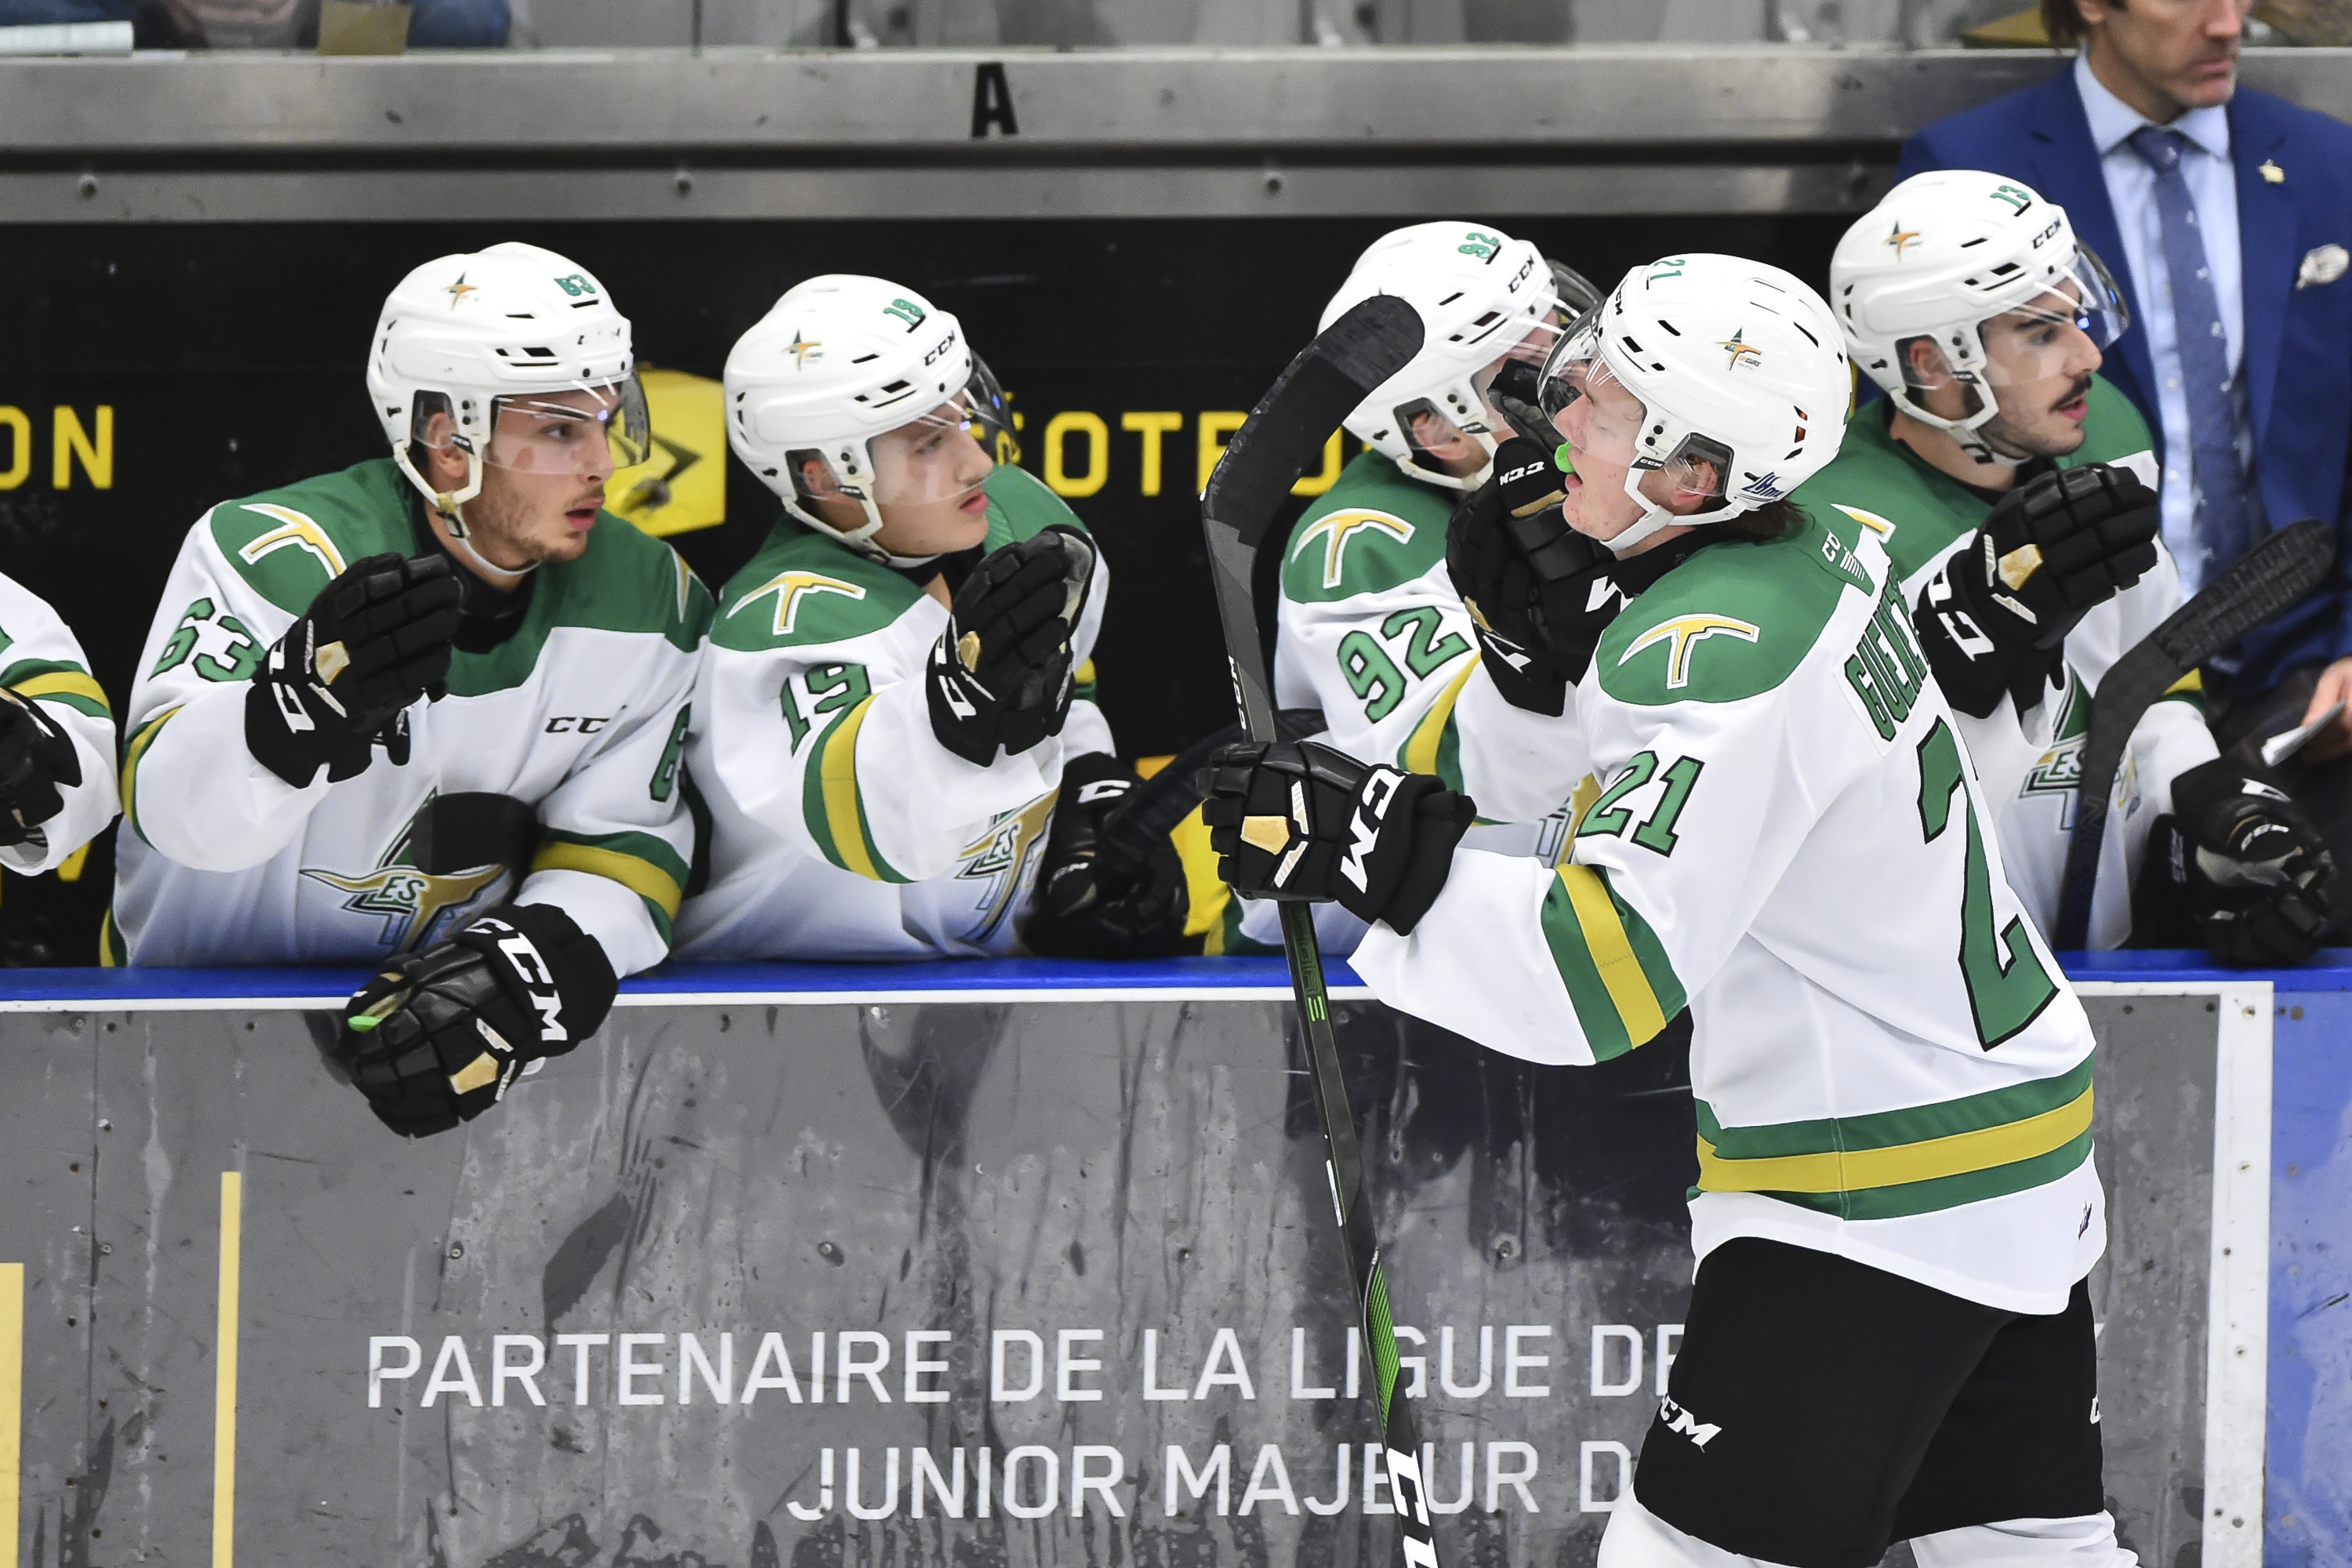 Val-d'Or Foreurs v Blainville-Boisbriand Armada